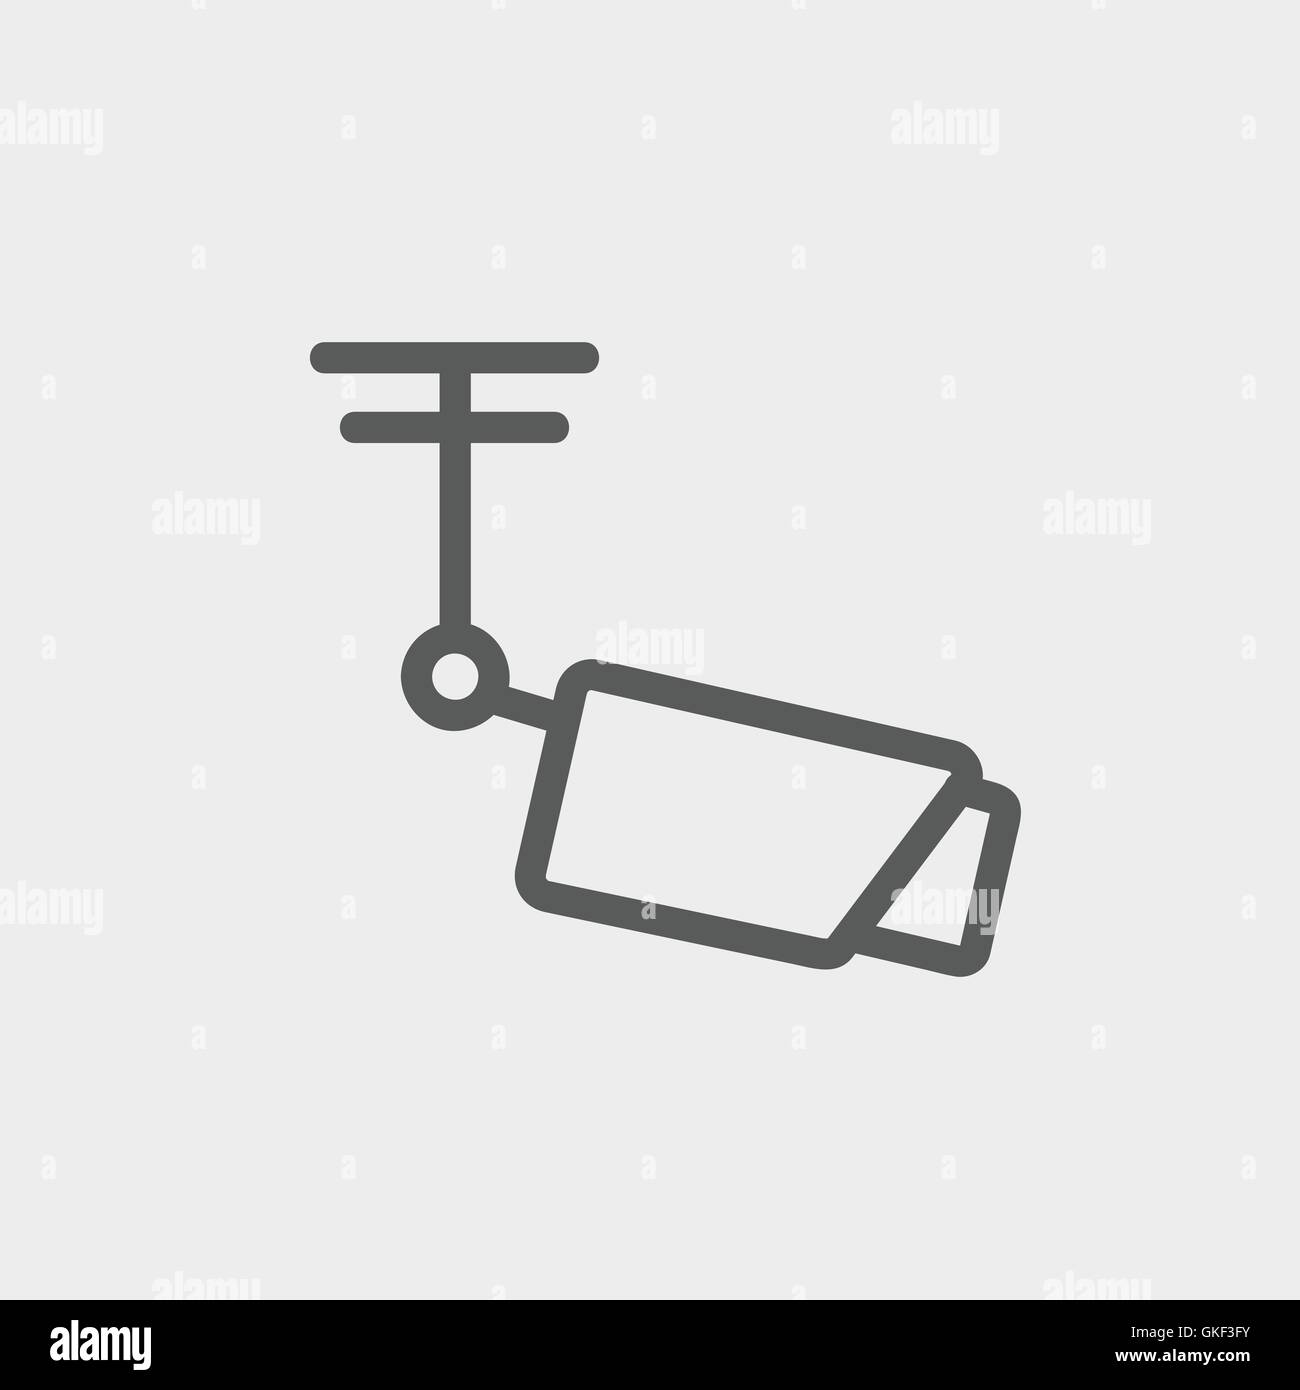 Rooftop antenna thin line icon - Stock Image